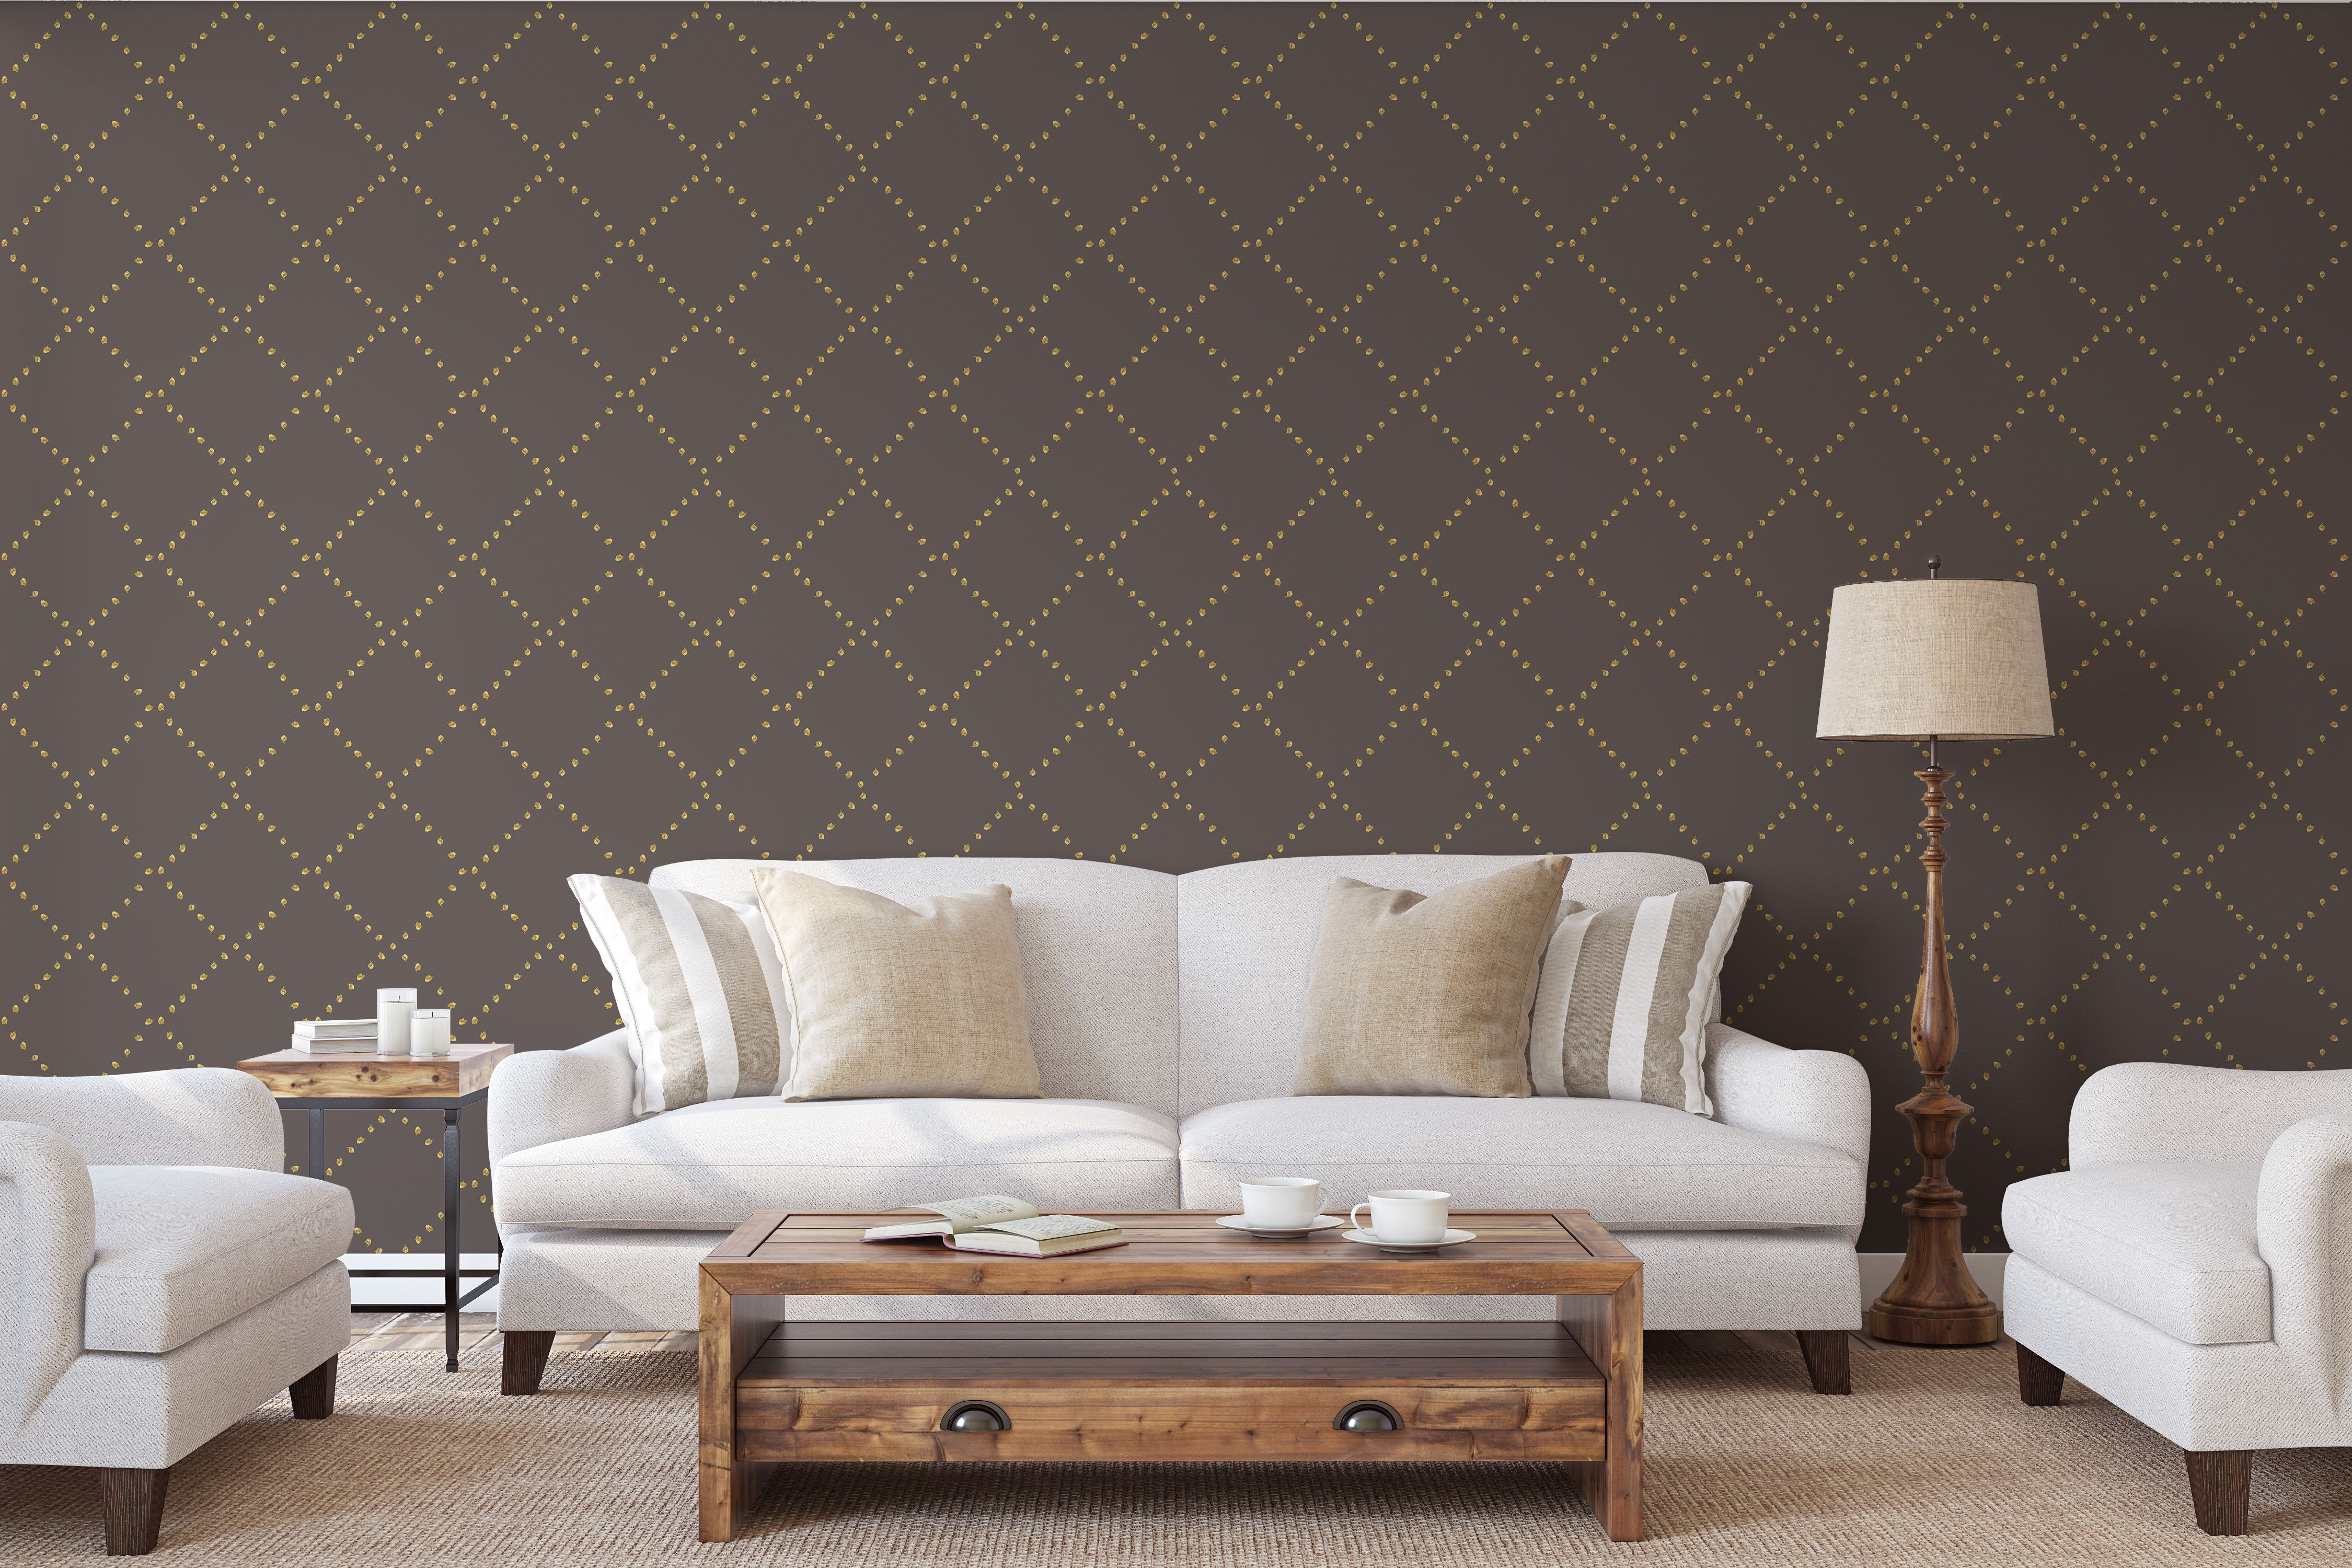 A Modern Design Wallpaper For Your Home That Mixes A Cla